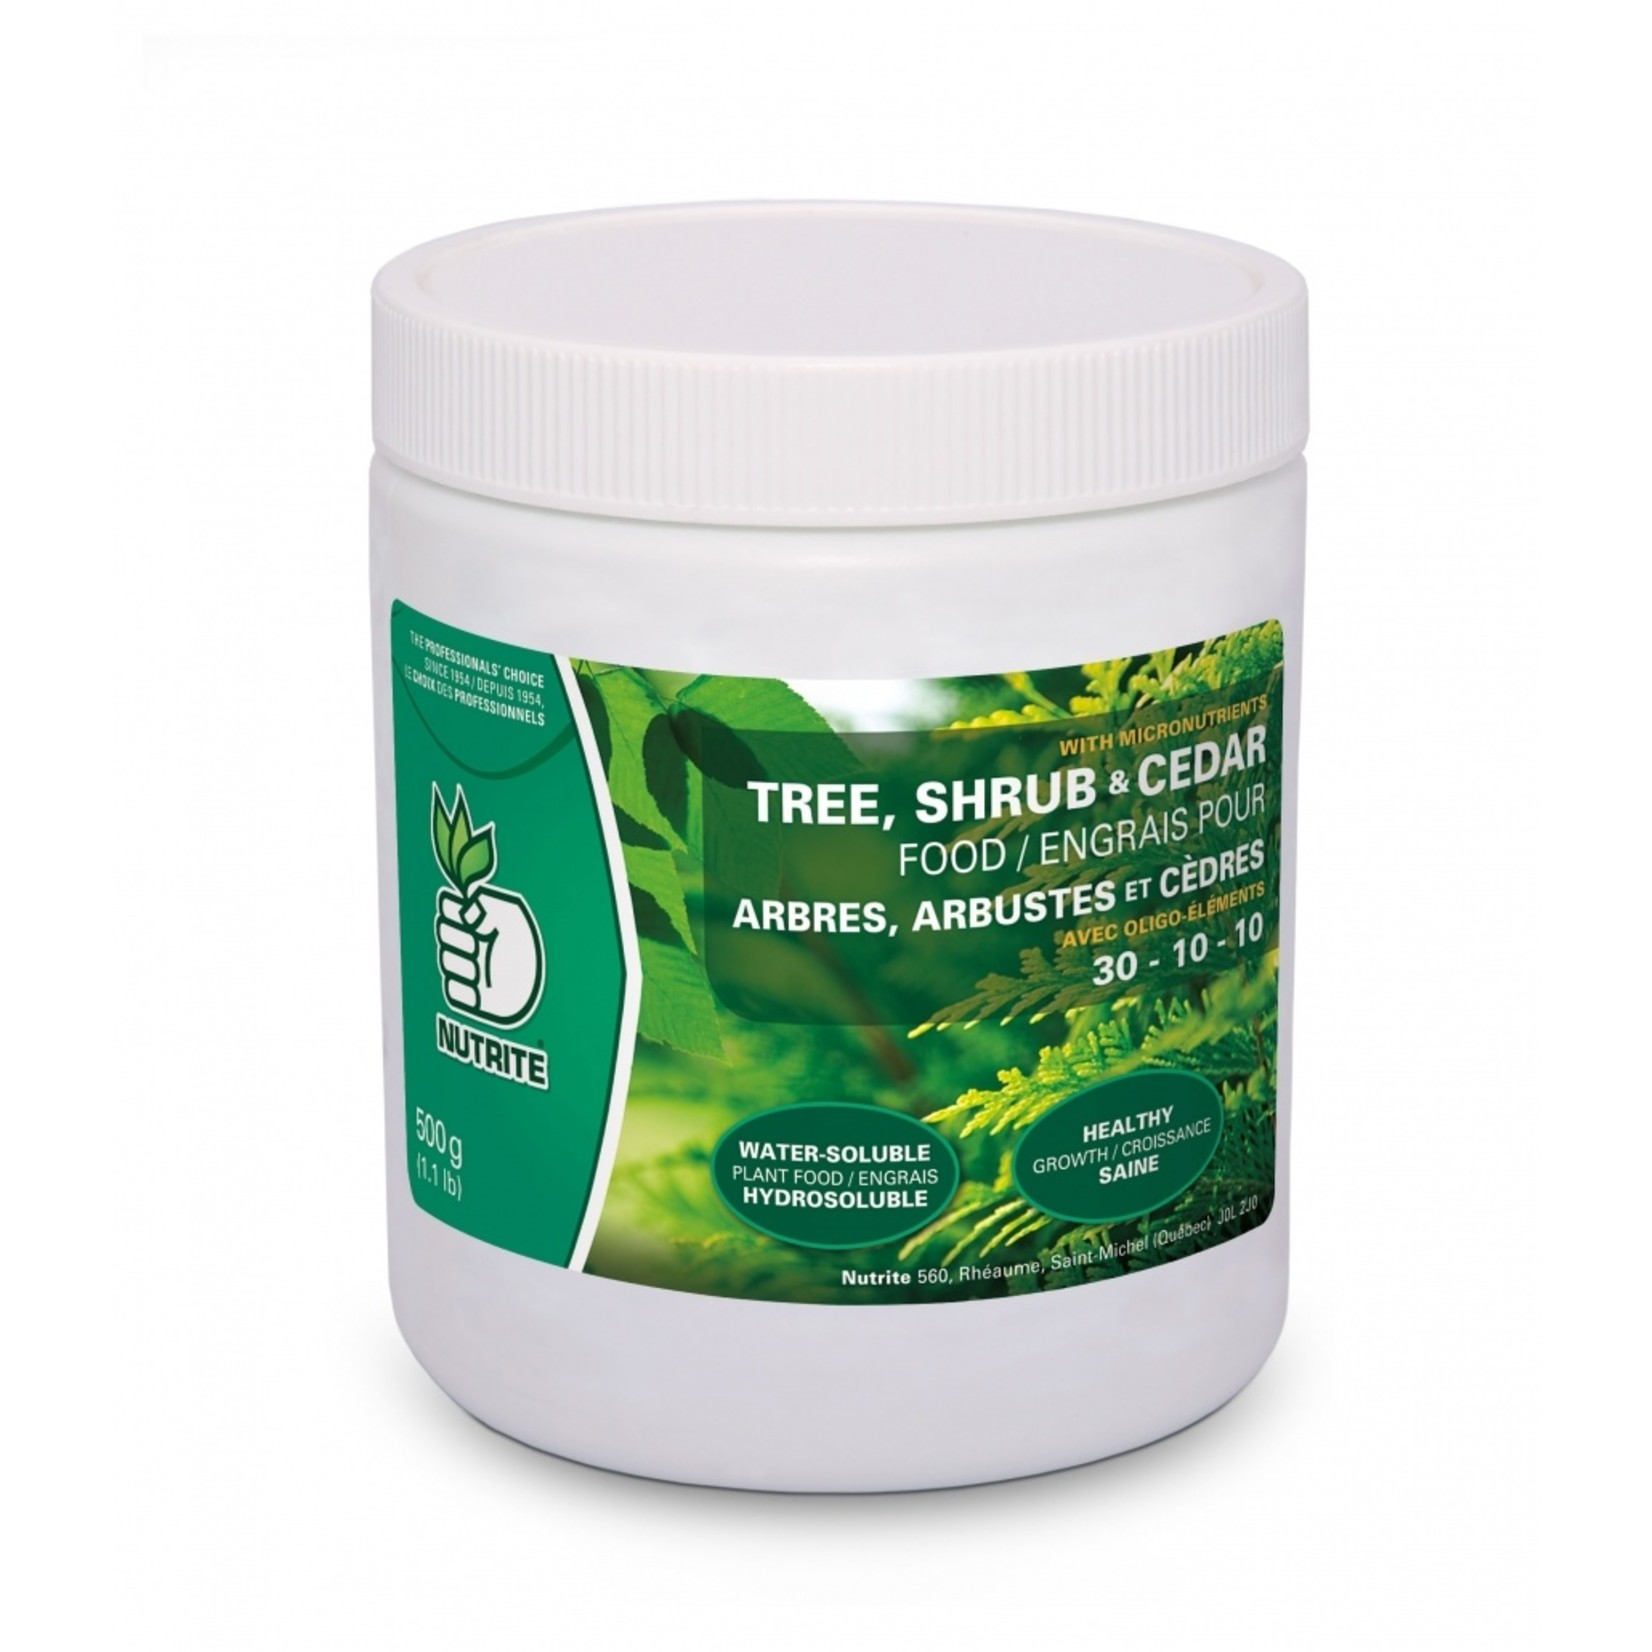 Nutrite Tree, Shrub & Cedar Fertilizer (30-10-10) 500g